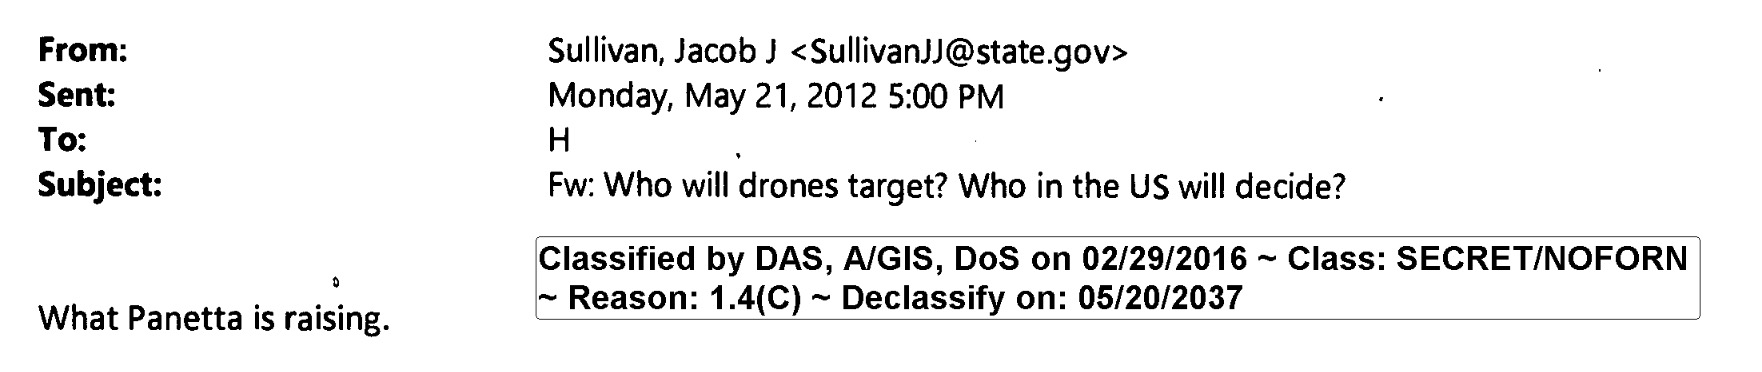 Email from Jake Sullivan to Hillary Clinton, May 21, 2012, containing classified information (via State Department)